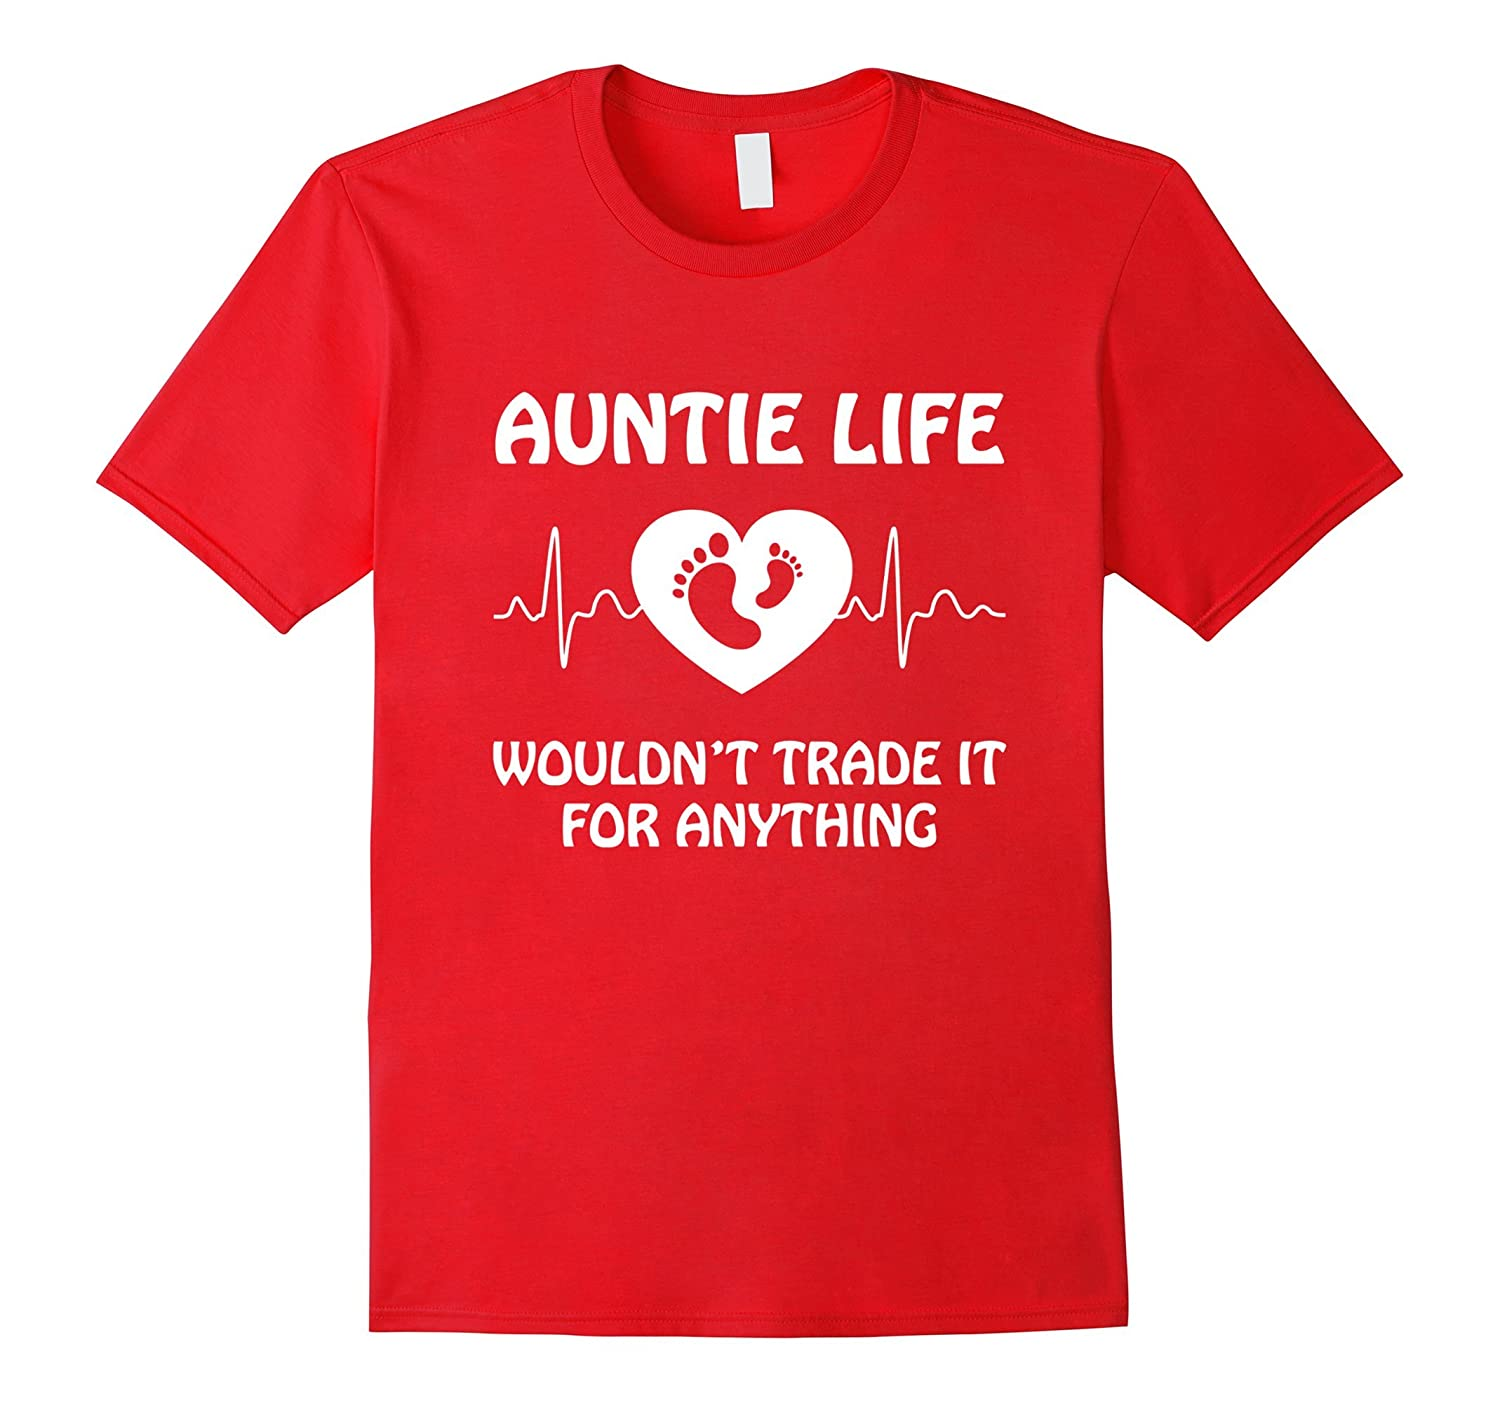 Auntie life wouldnt trade it for anything-Vaci